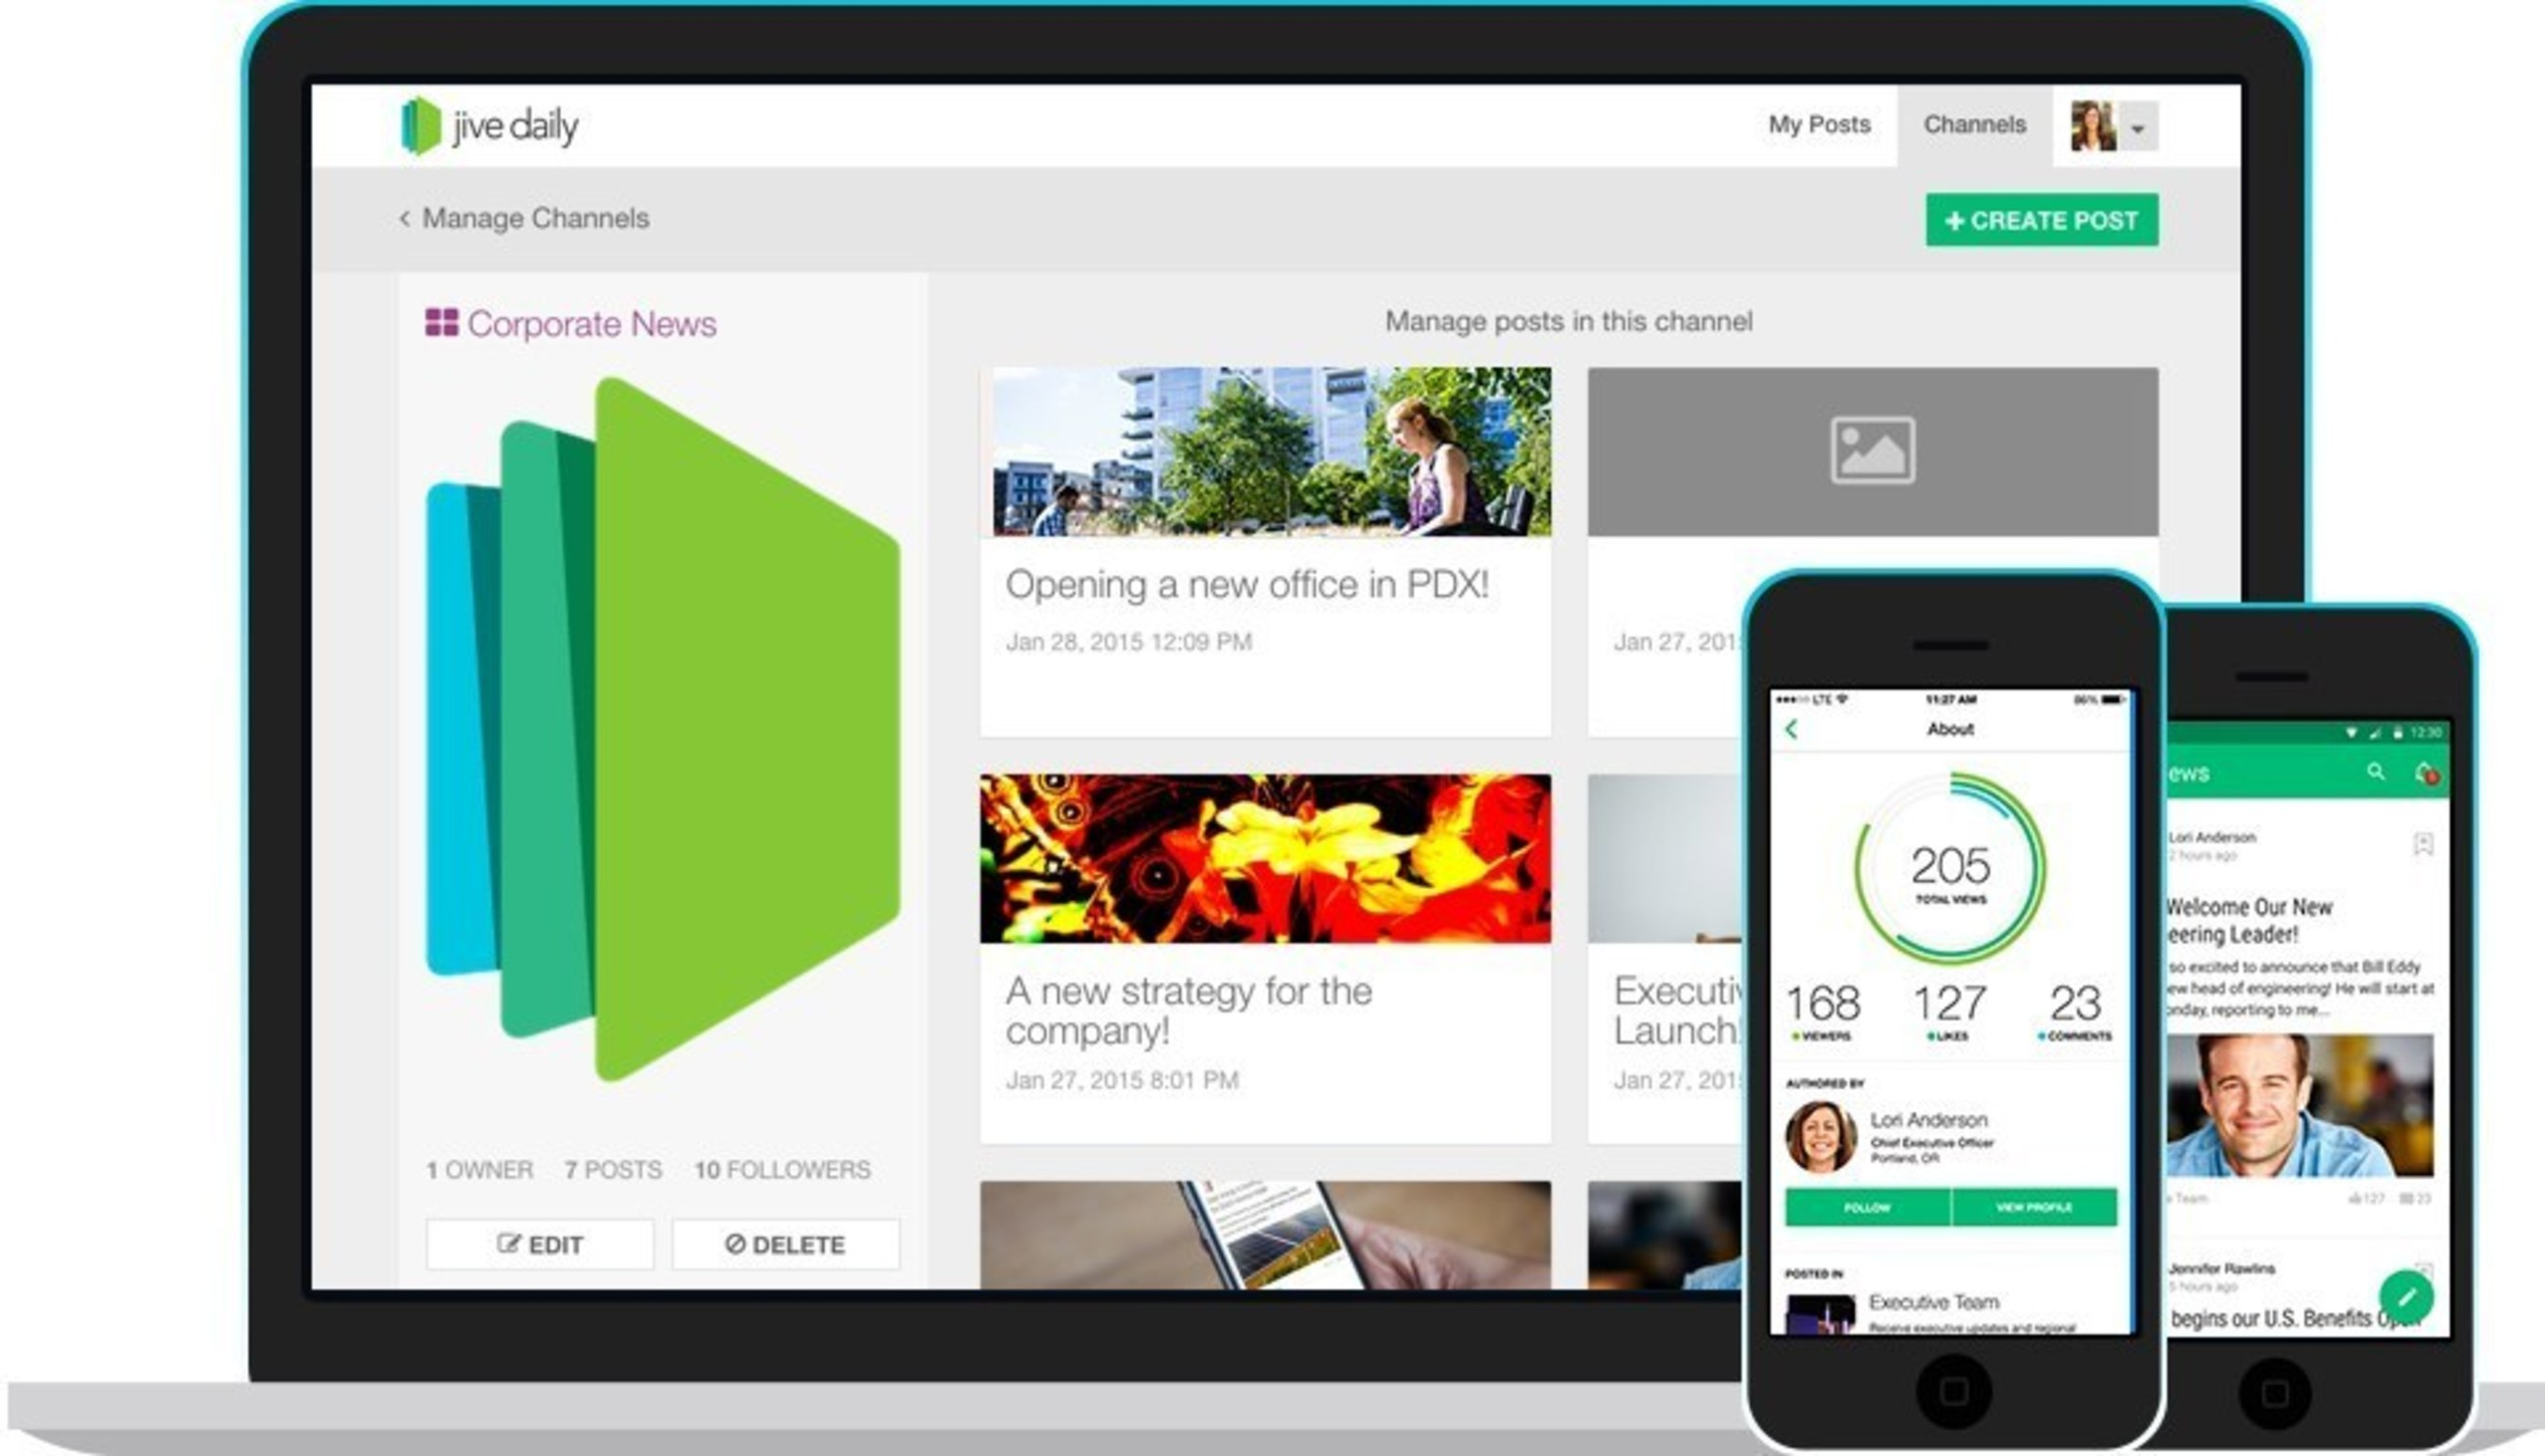 Jive Daily helps companies get the word out, drive conversations and analyze communications impact in real time.